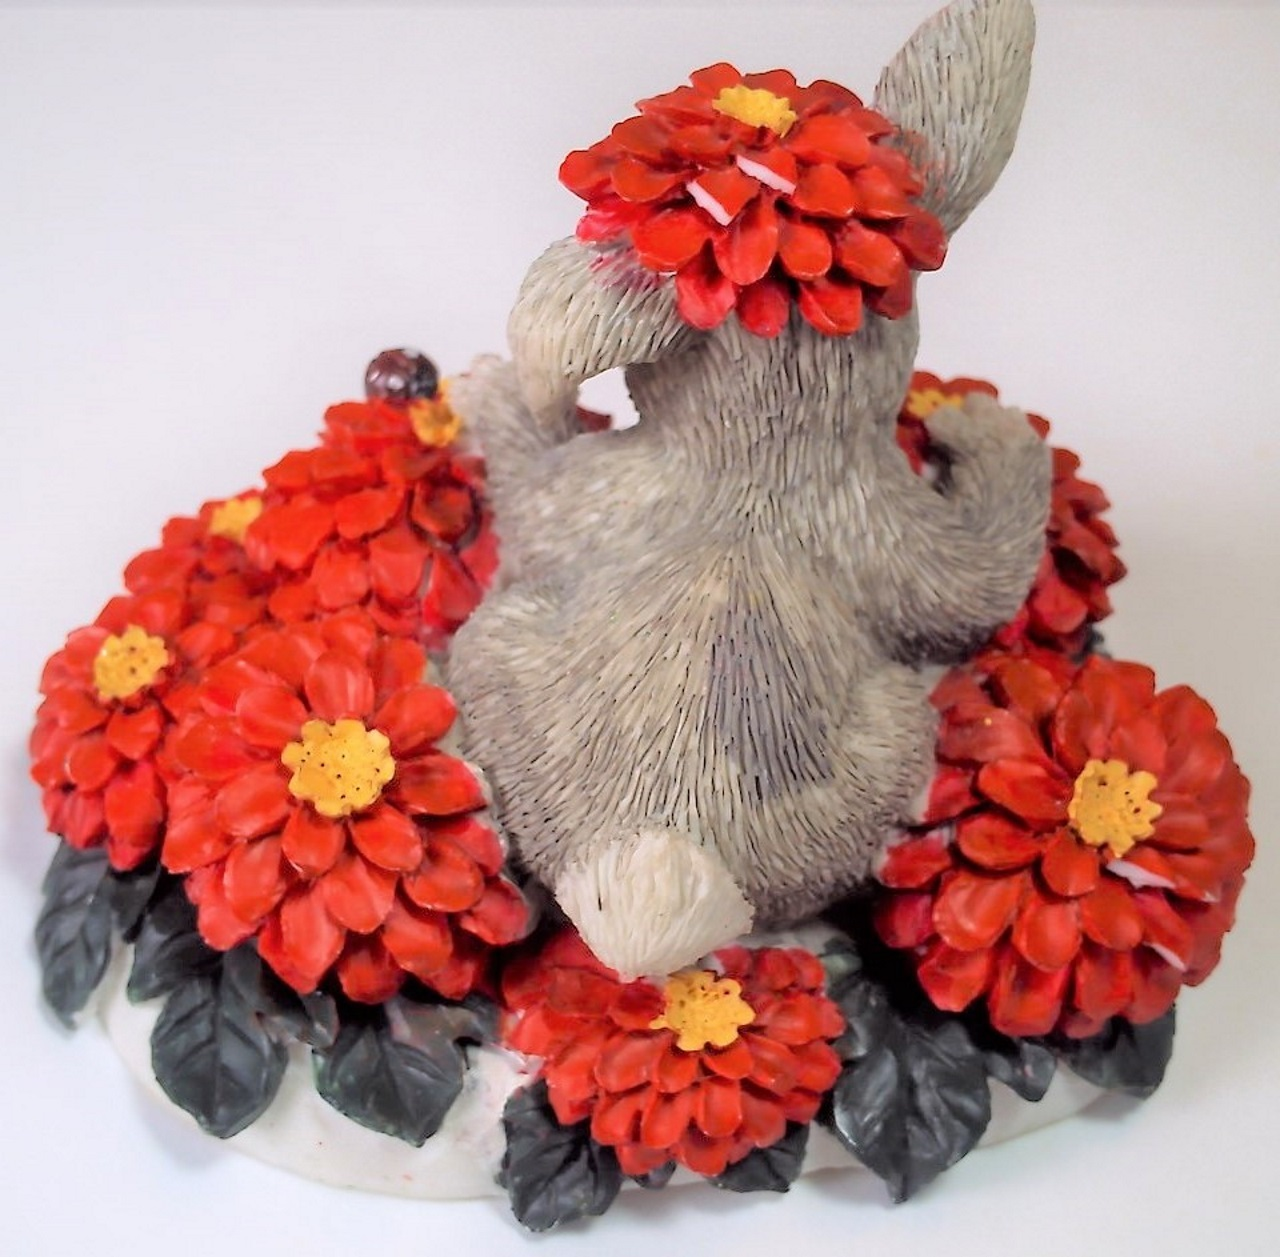 Charming Tails Binkey in a Bed of Flowers 1995 Edition 887/426